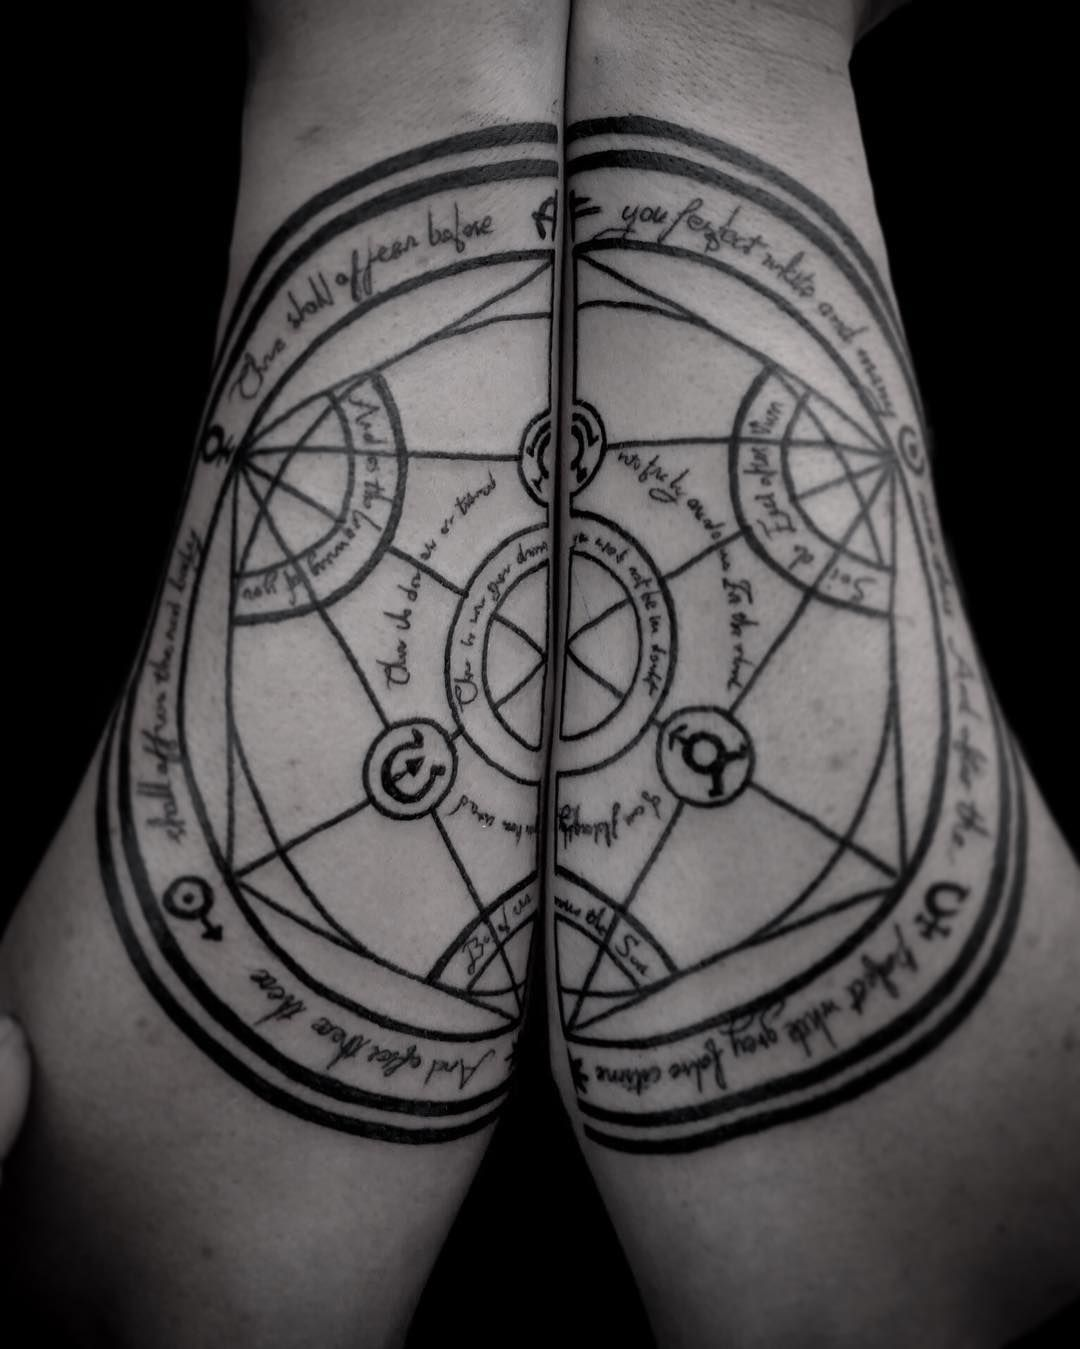 Fun Doing This Alchemy Spell Witchcraft Wicca Tattoo Done With Circuitry By Brujo On Deviantart Bigdave409 Alphasuperfluid Blackwork Ink At Onemoretattoolu In Luxembourg